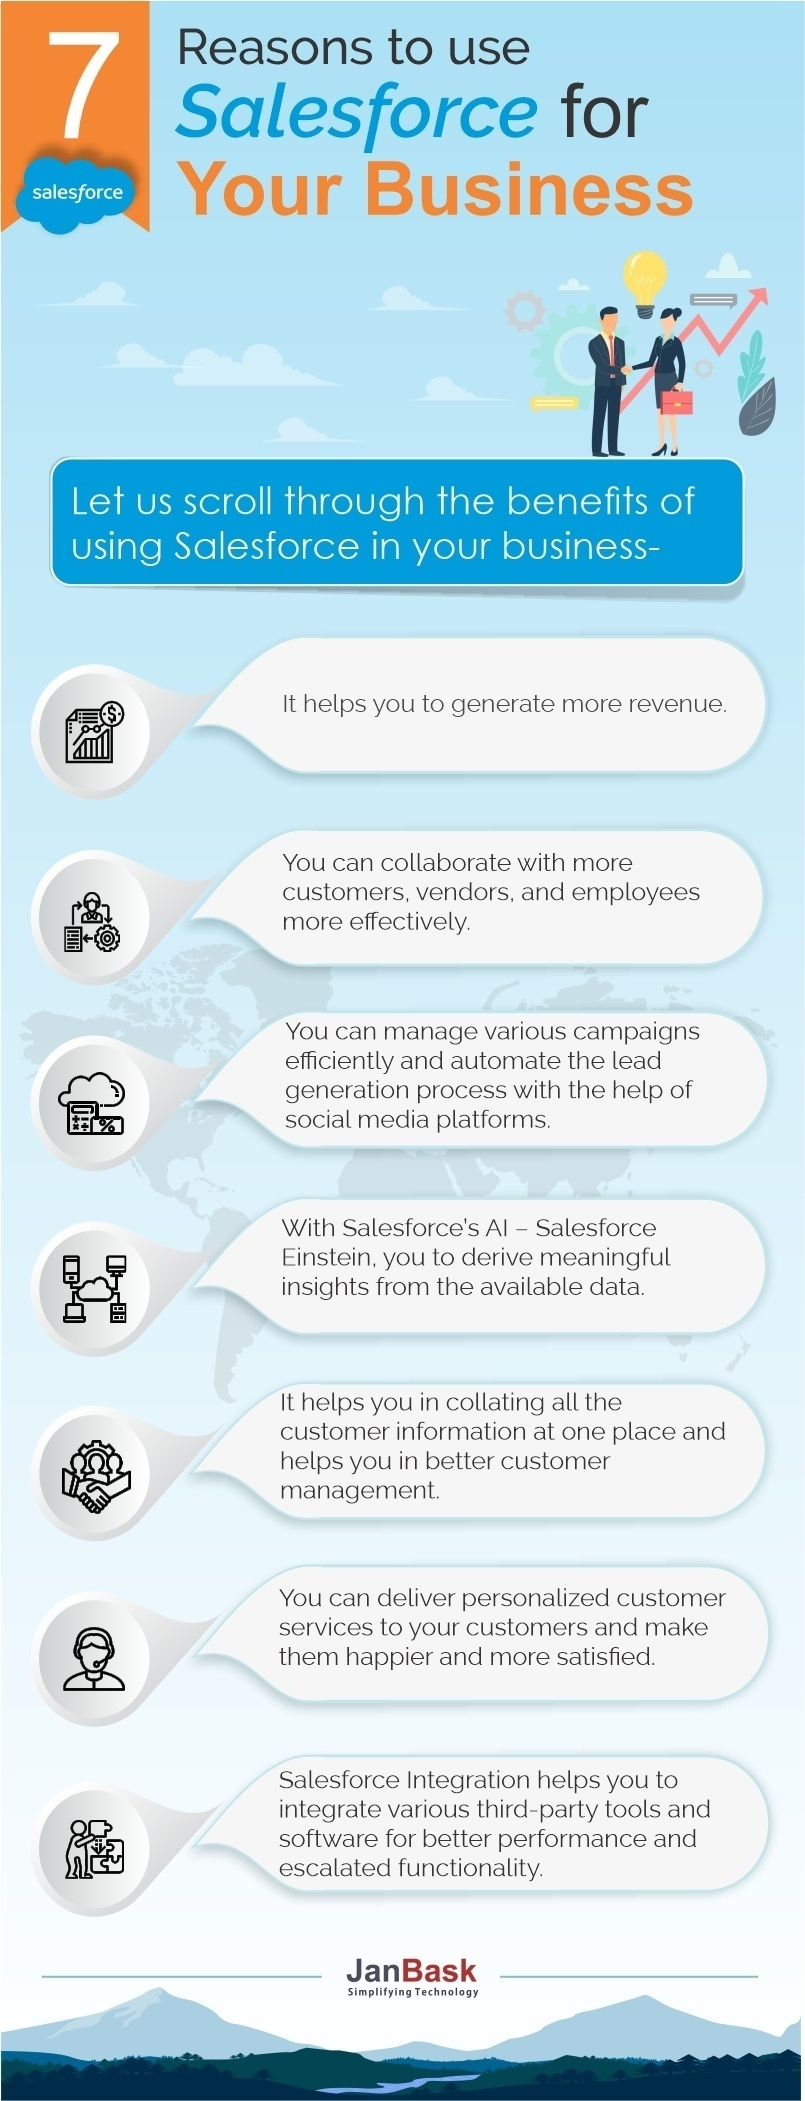 How Salesforce is Beneficial For Your Business